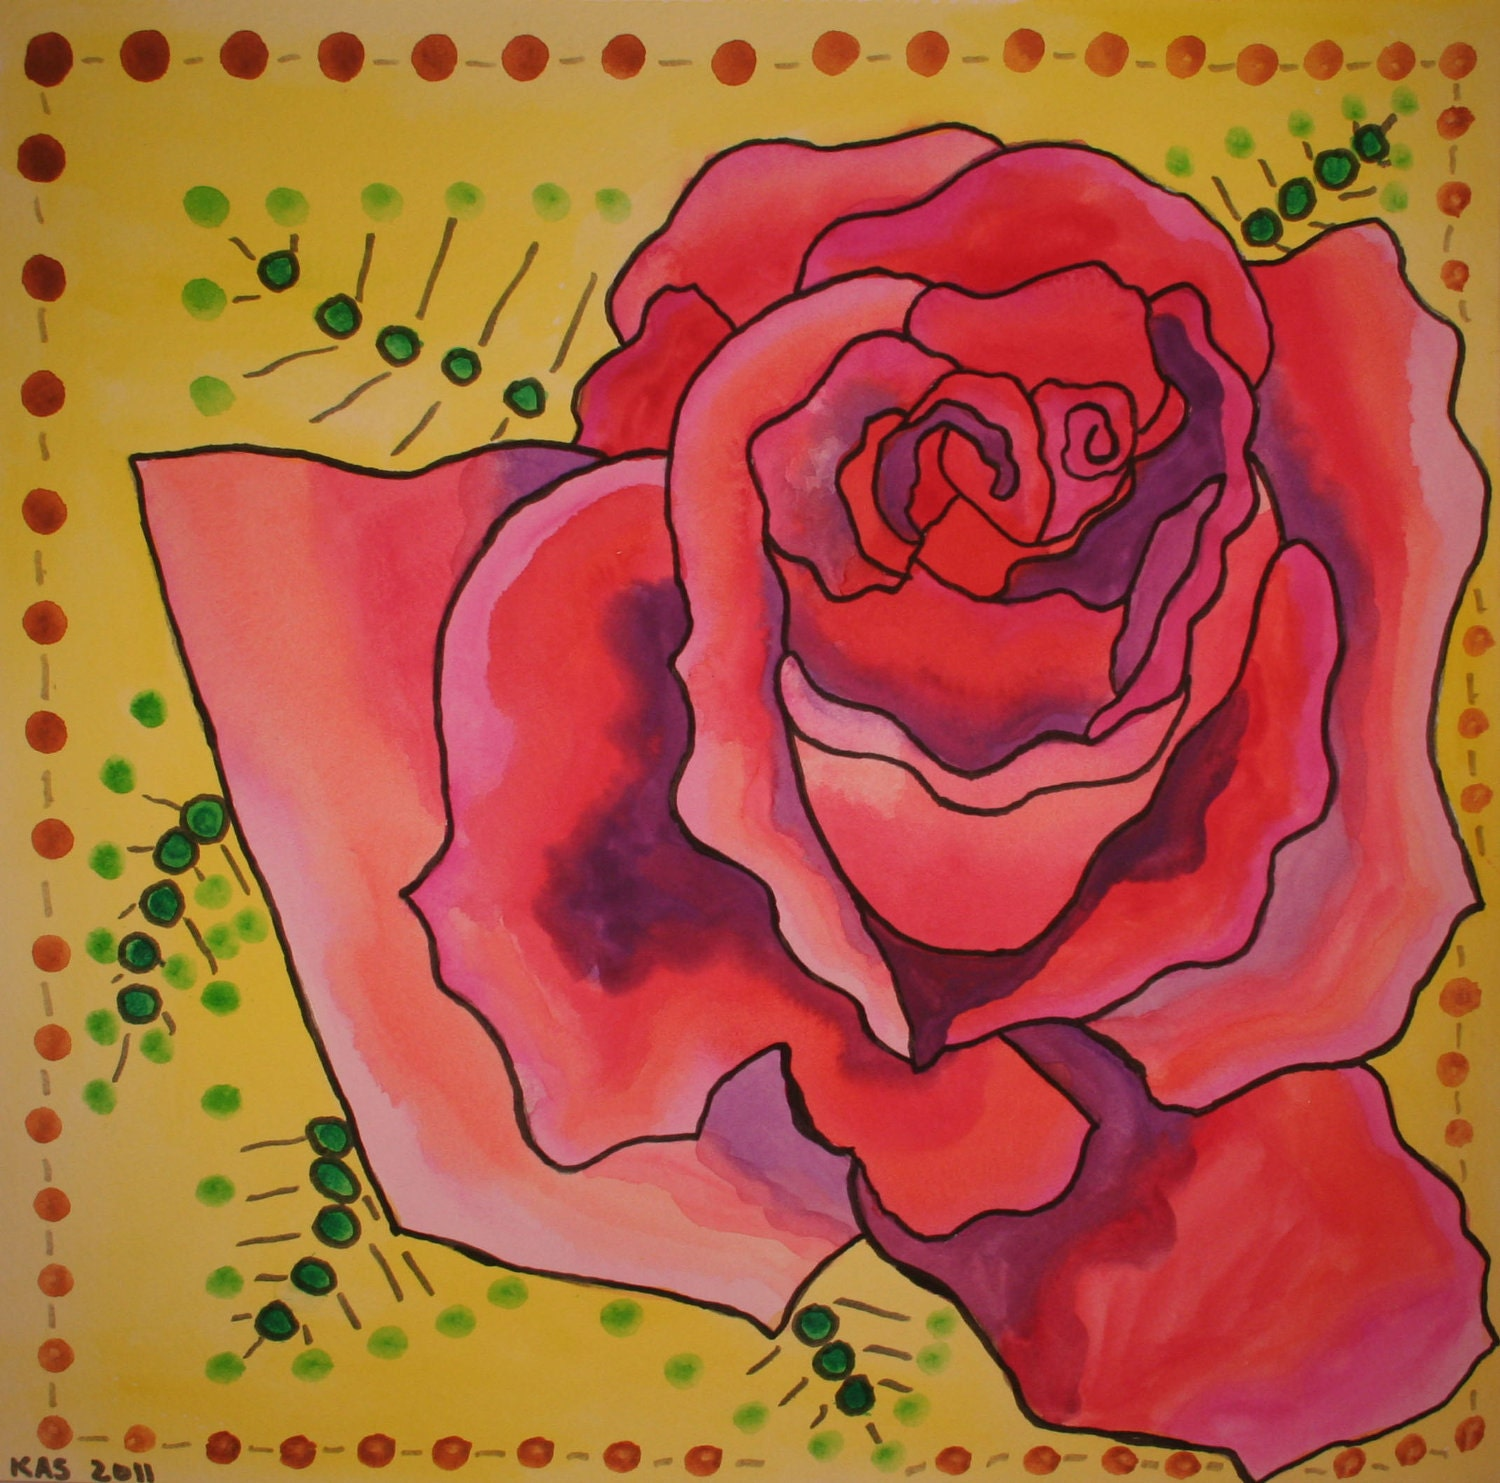 12x12 OOAK Watercolor Painting: Rose of Passion